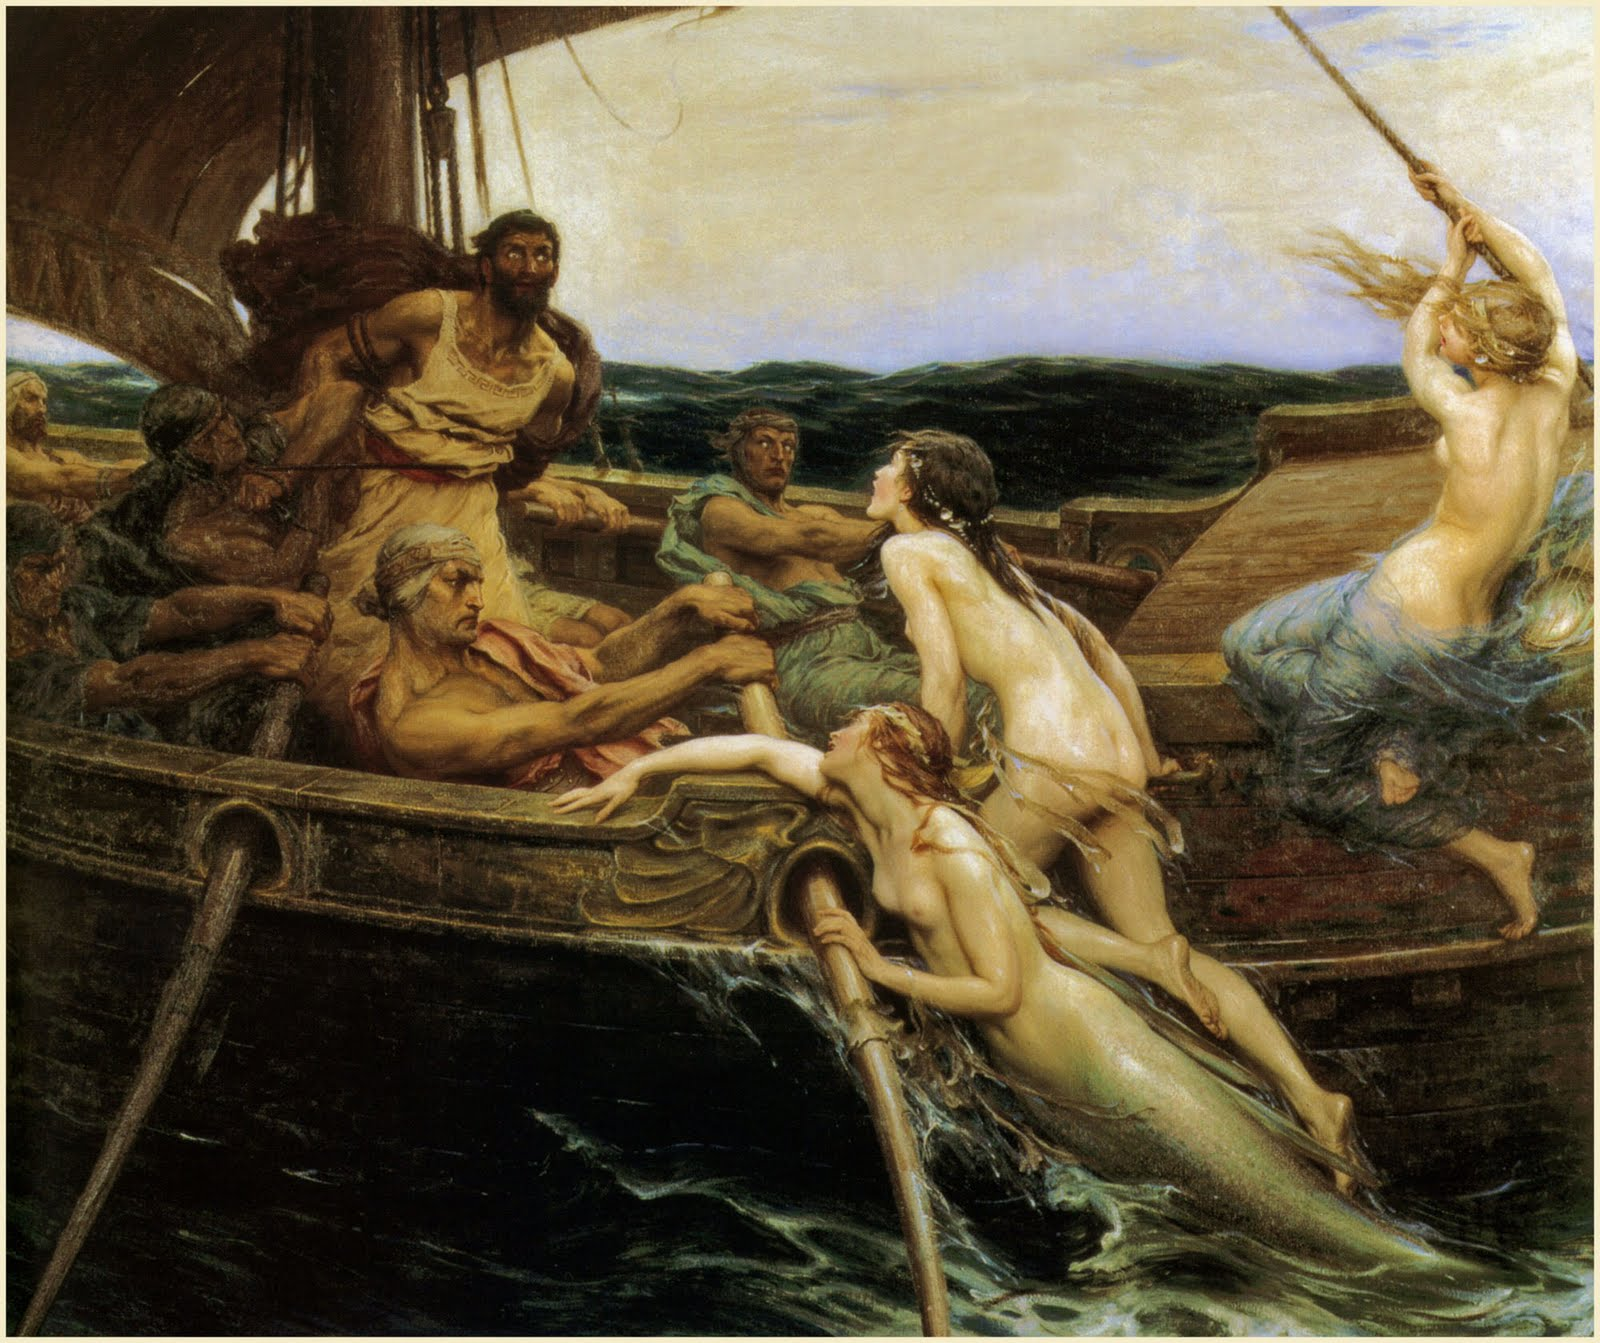 imagen de Herbert James Draper. Ulysses and the Sirens (1909)